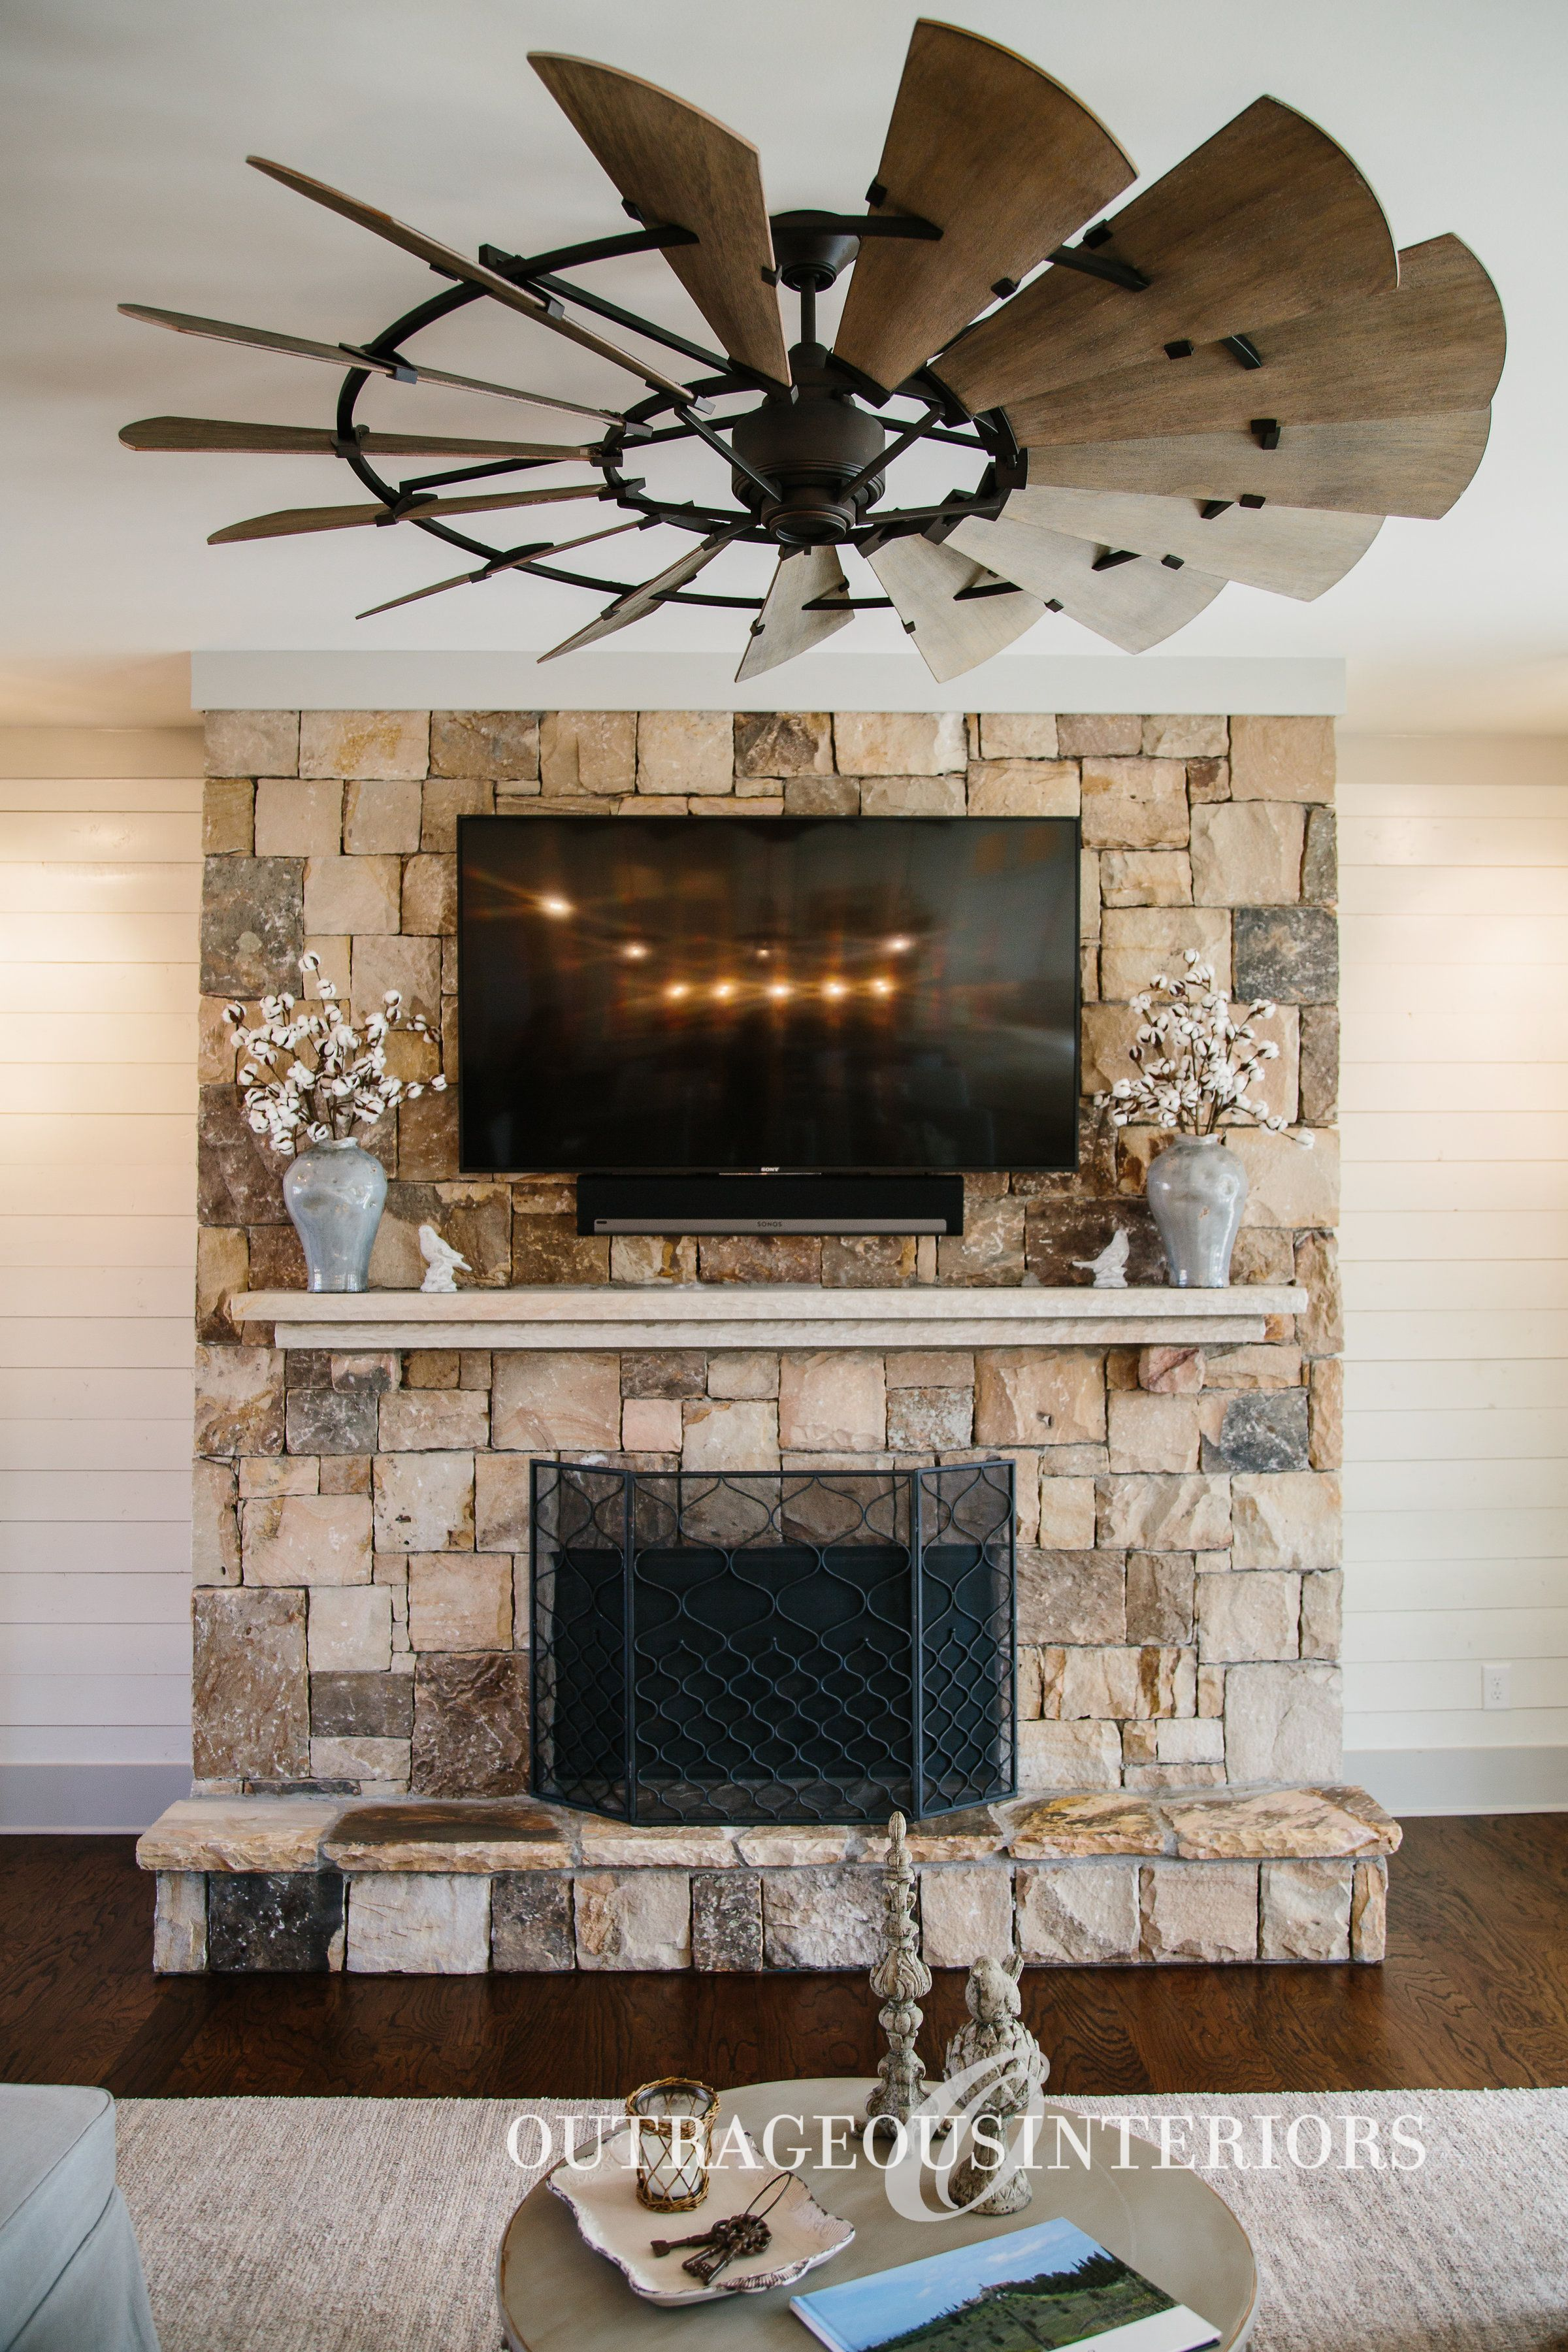 this industrial style ceiling fan is a great way to complement the